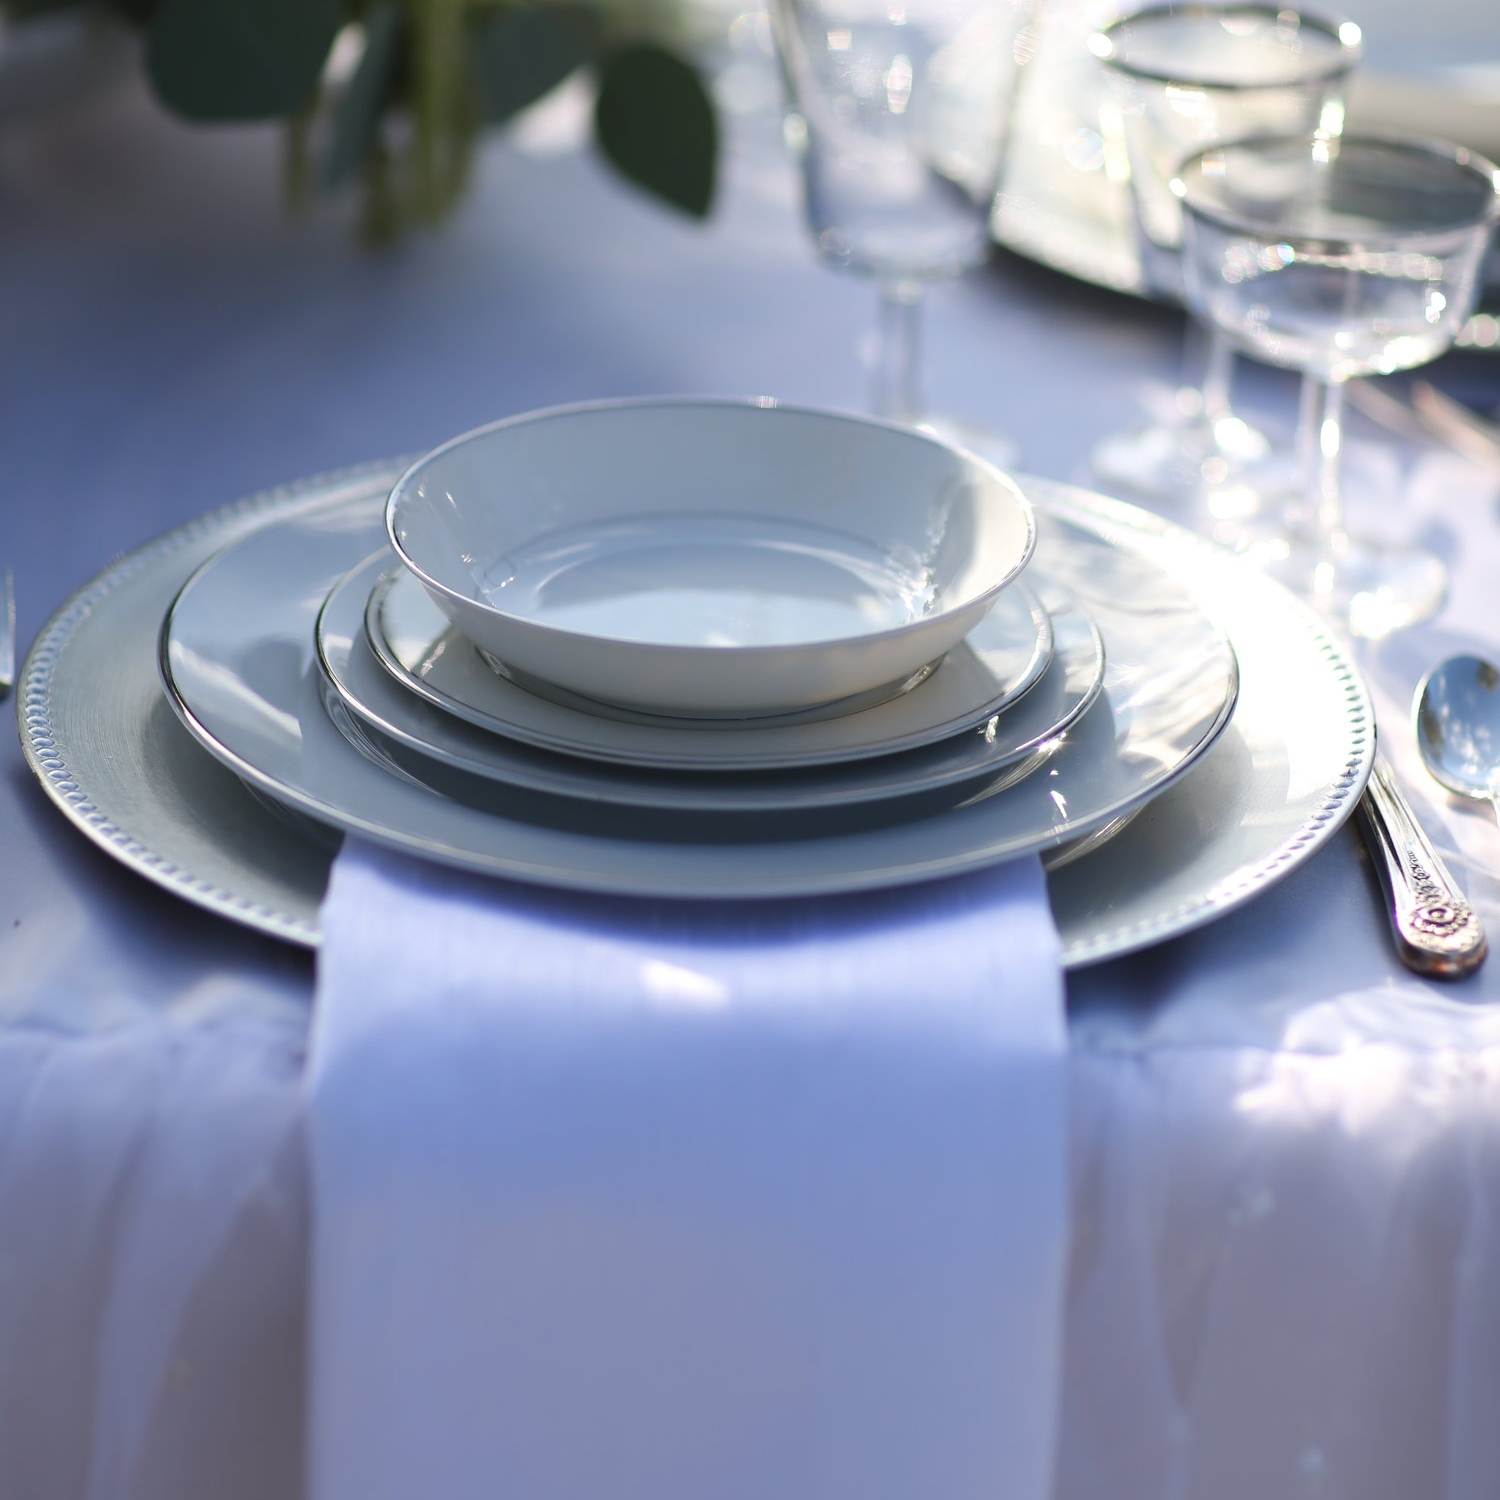 Acrylic beaded charger plates with silver rimmed china place setting on wedding table. Rentals.